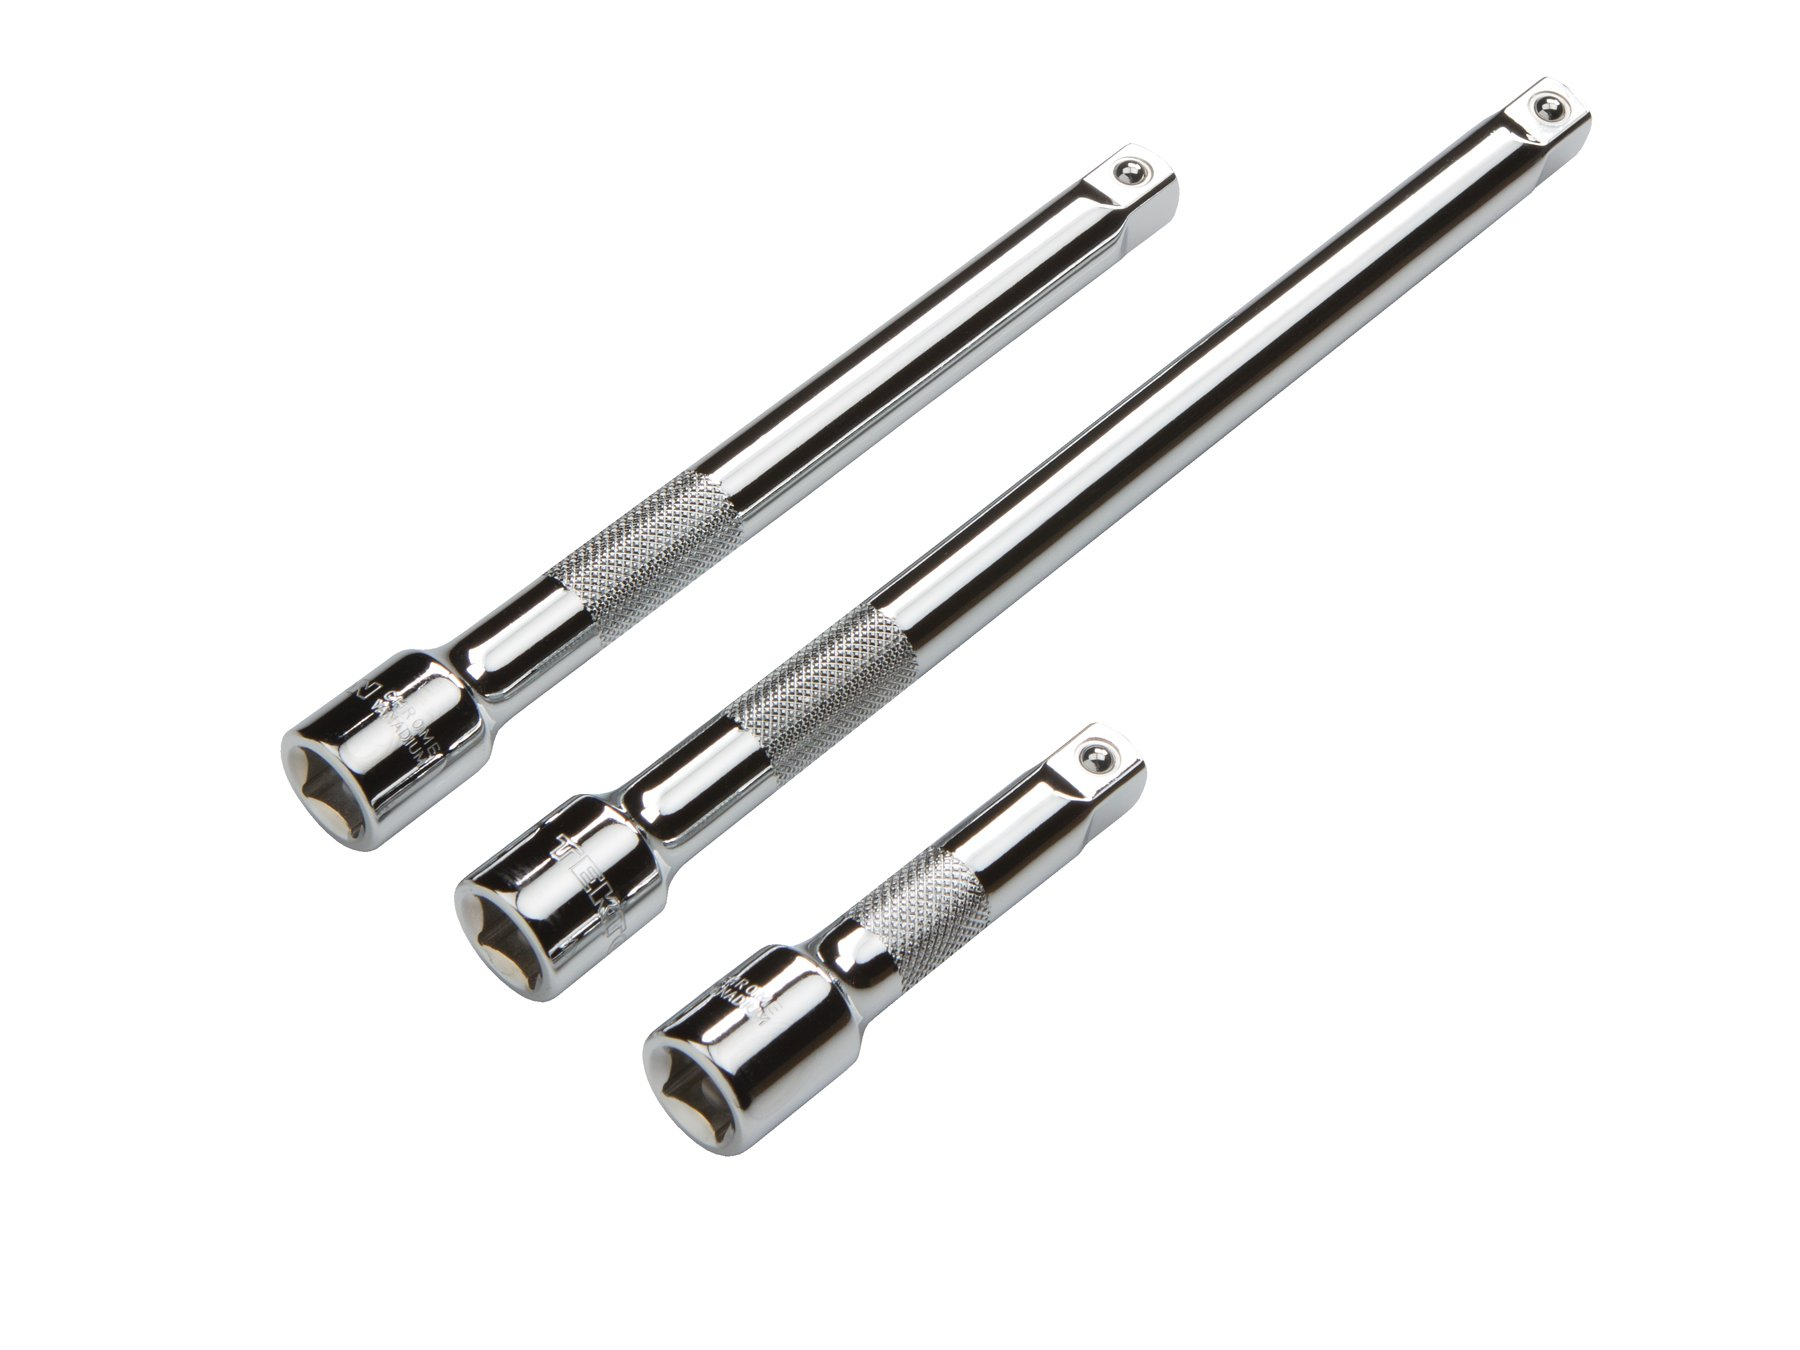 TEKTON 1601 3/8-Inch Drive Extension Bar Set, Cr-V, 3-Piece